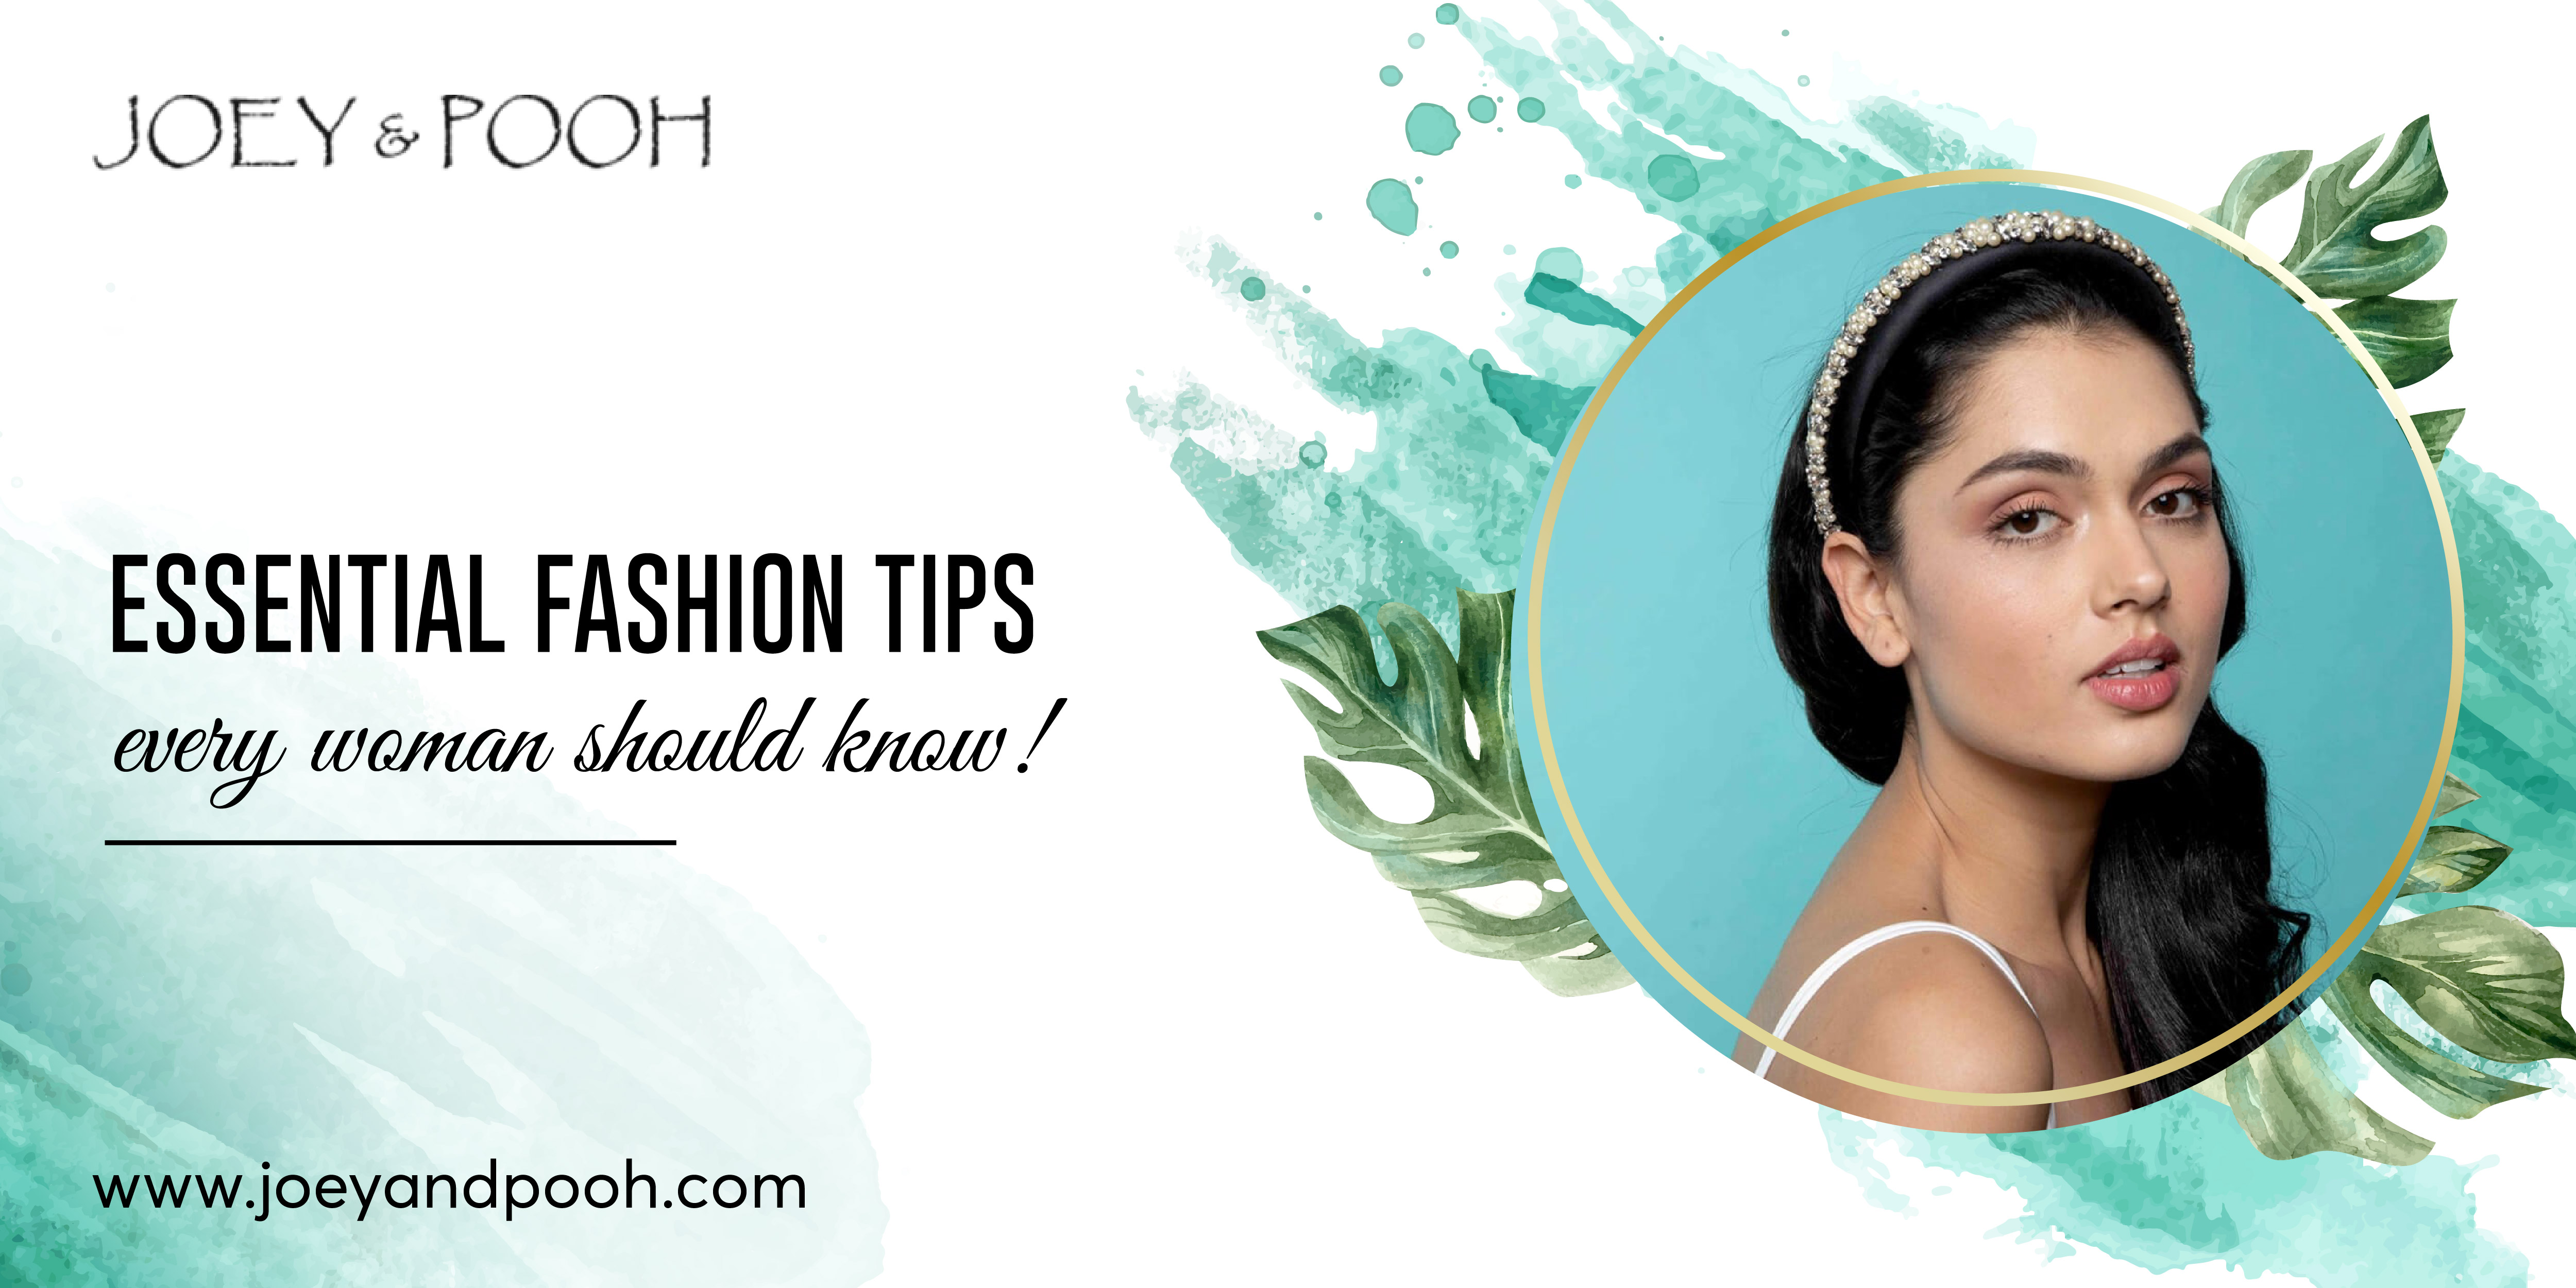 Essential Fashion Tips Every Woman Should Know